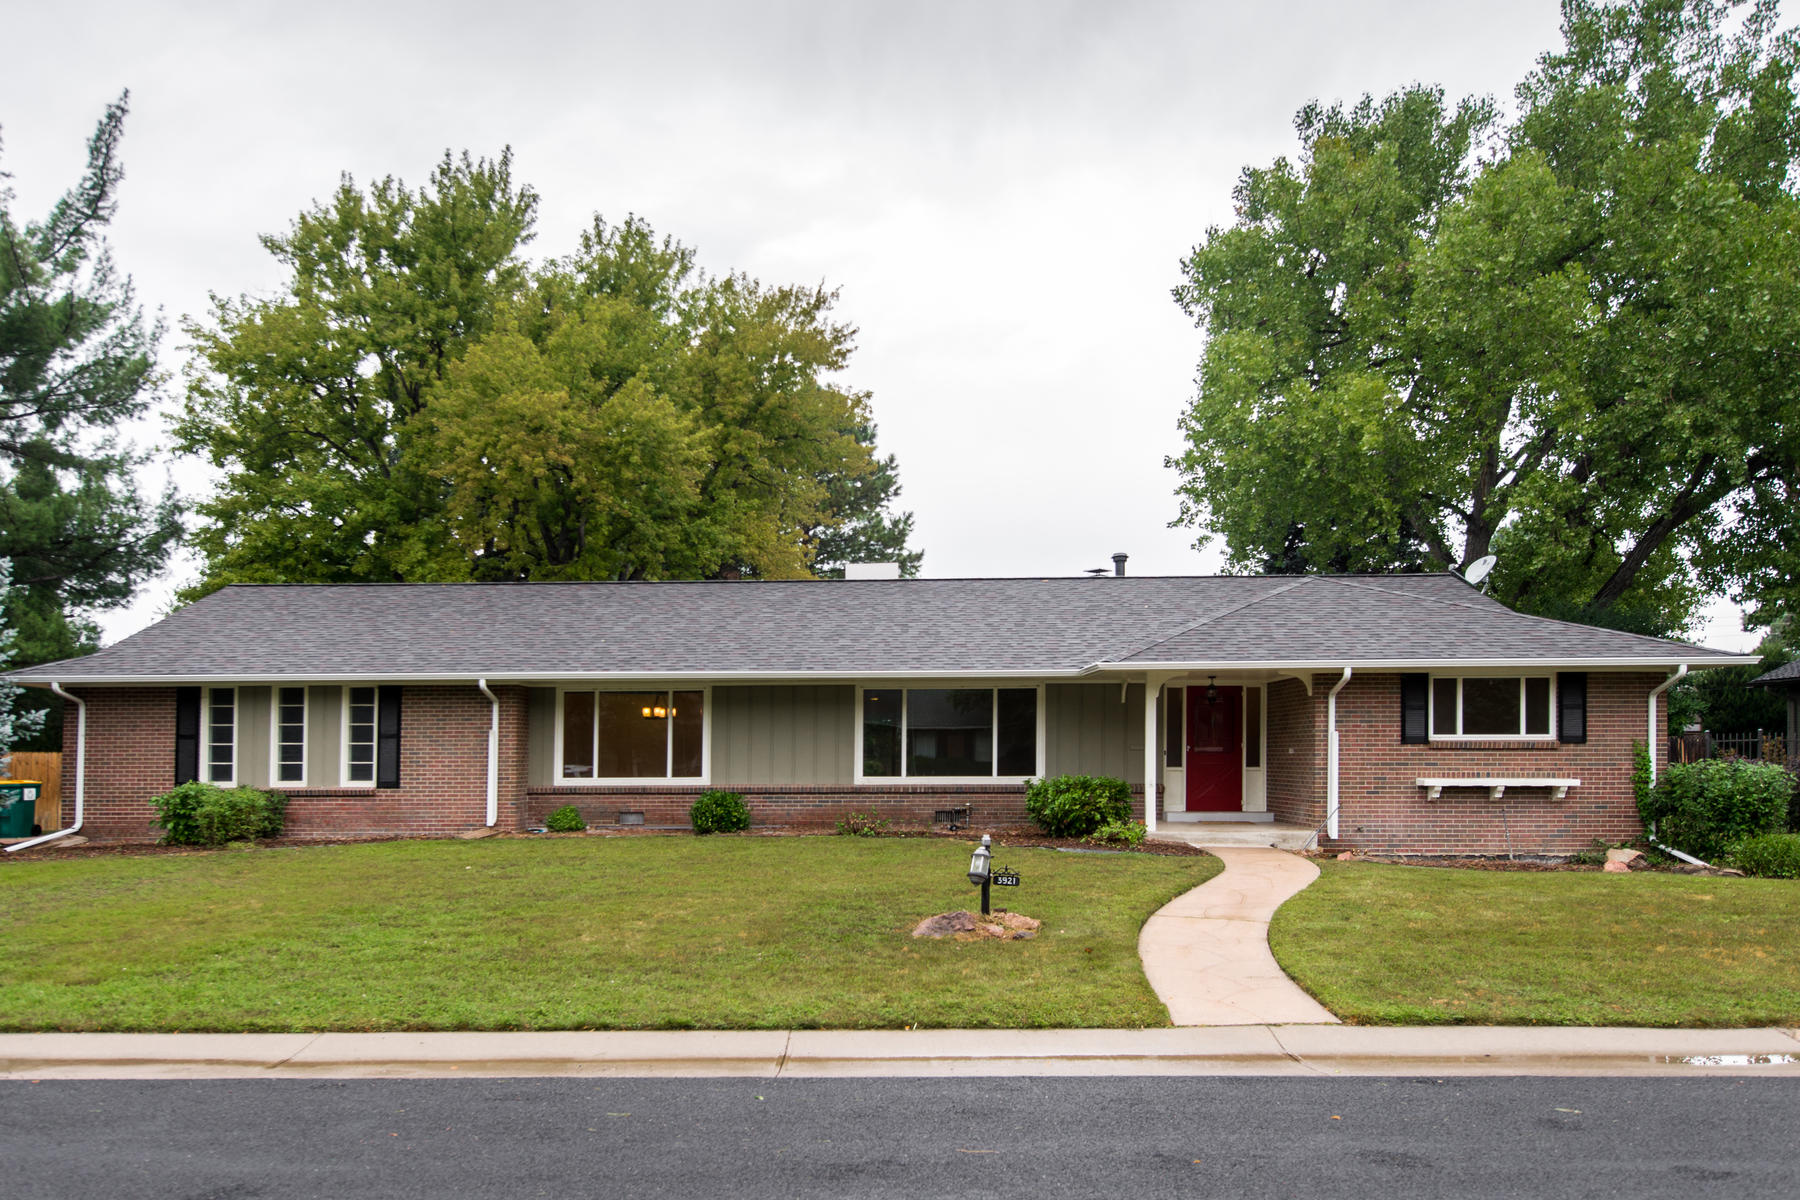 Single Family Home for Active at Opportunity Knocks in Cherry Hills Village! 3921 S Birch St Cherry Hills Village, Colorado 80113 United States